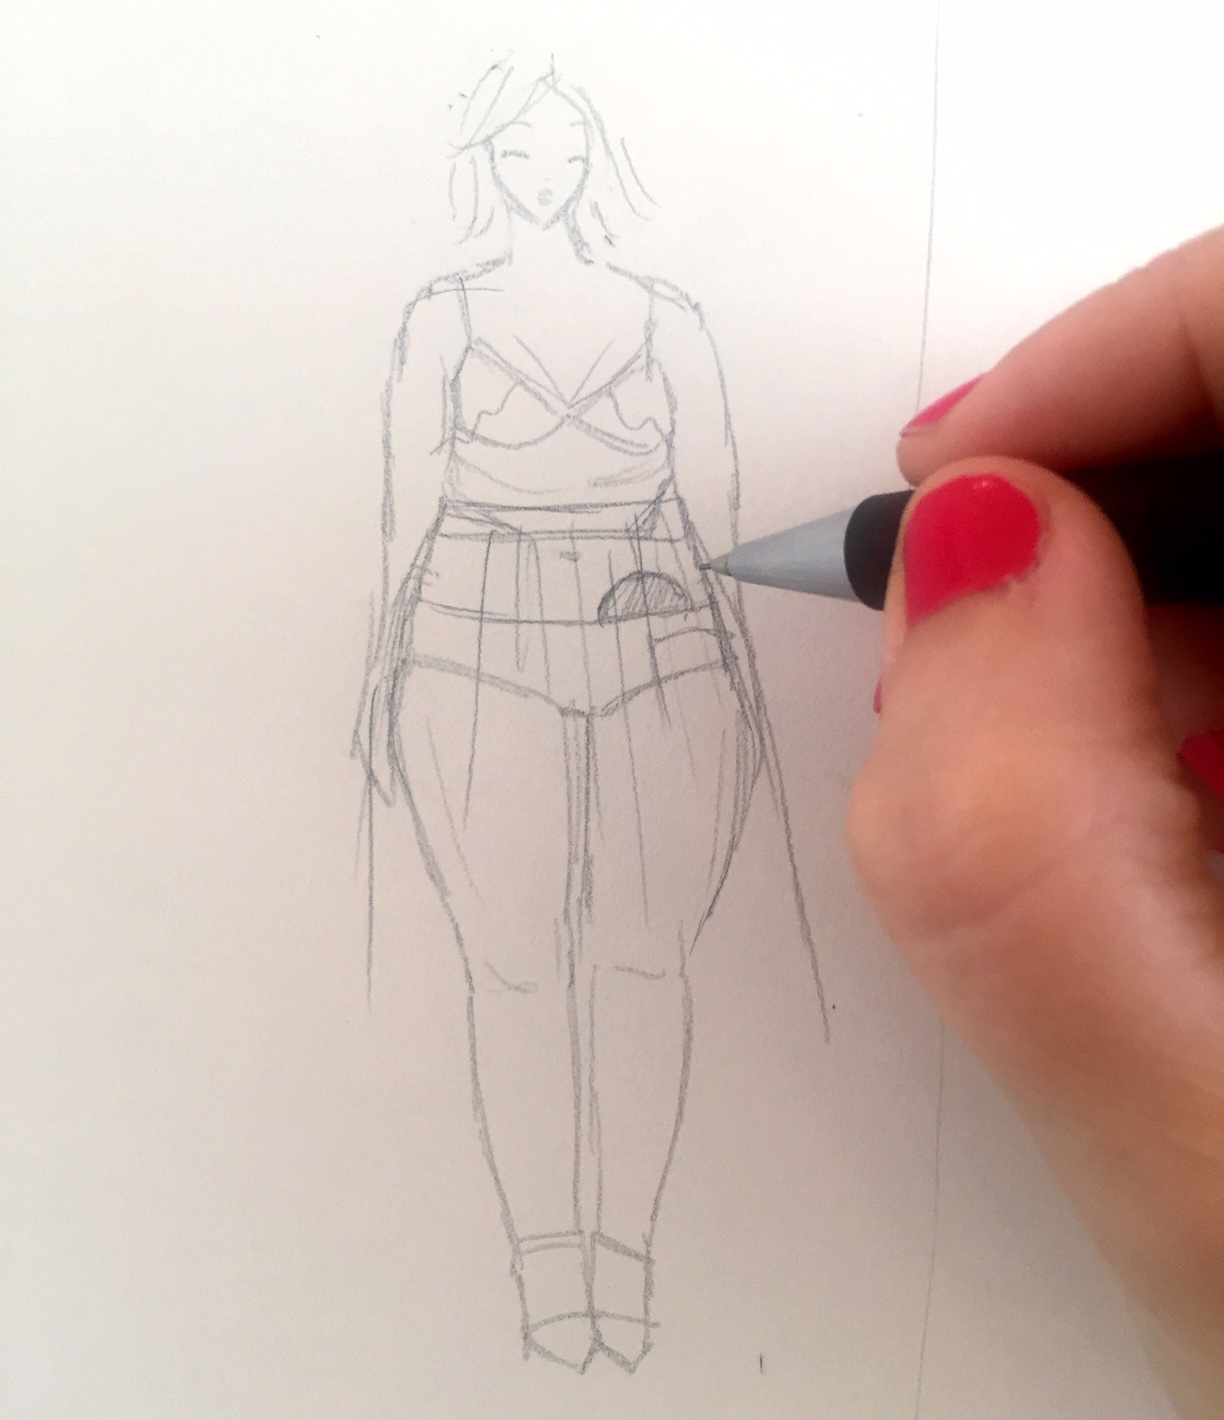 Pencil sketch of model with a stoma, showing how the high waistband means it won't be uncomfortable.